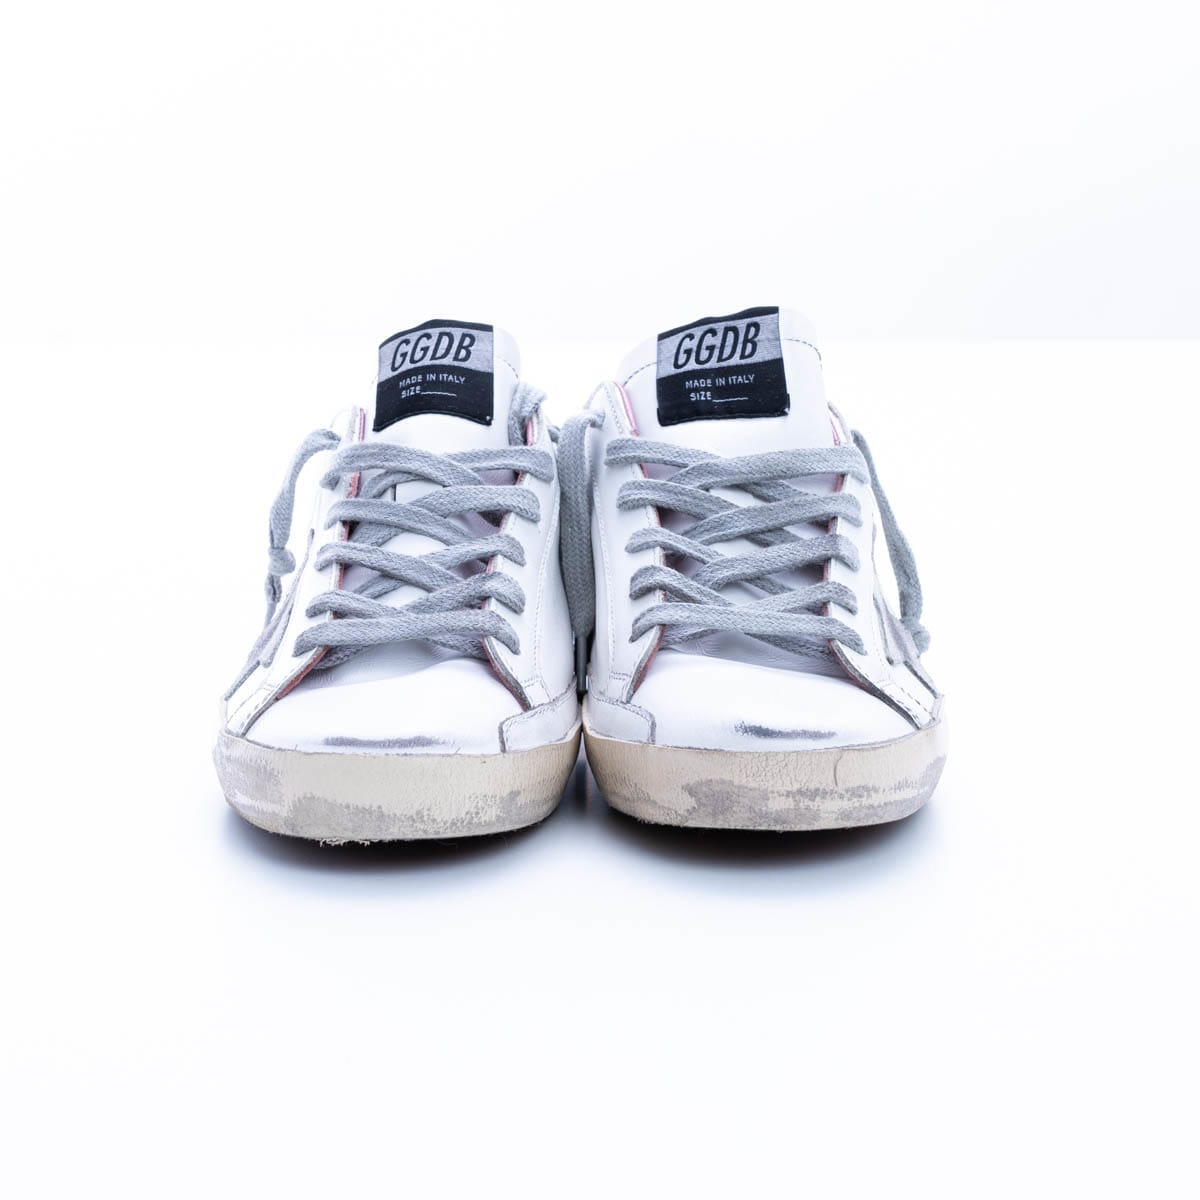 Golden Goose Super-star Leather And Fabric Sneakers In White - Ice - Pink